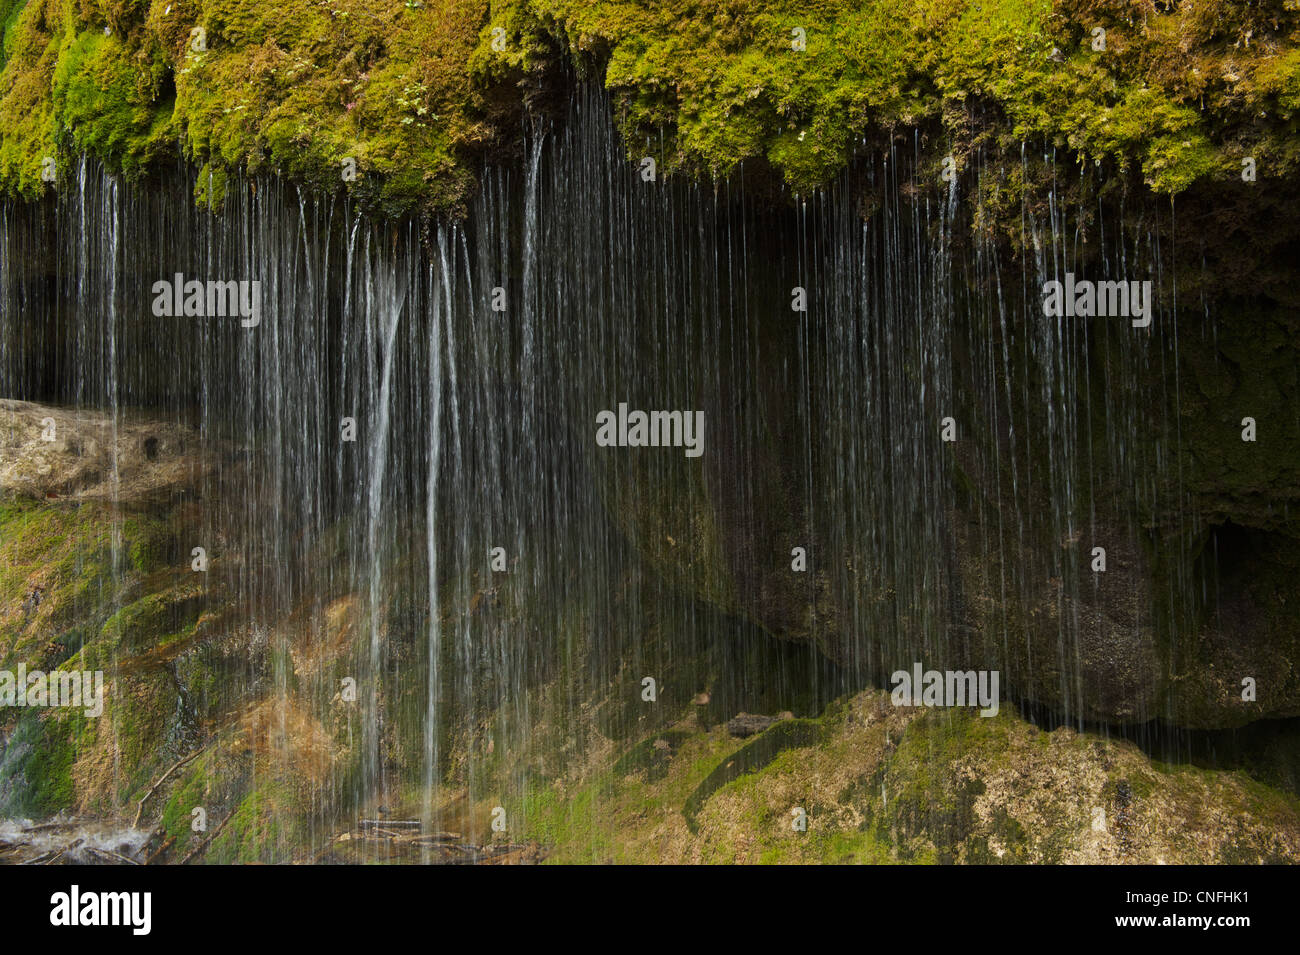 Water falls like a curtain from ledge covered with moss - Stock Image